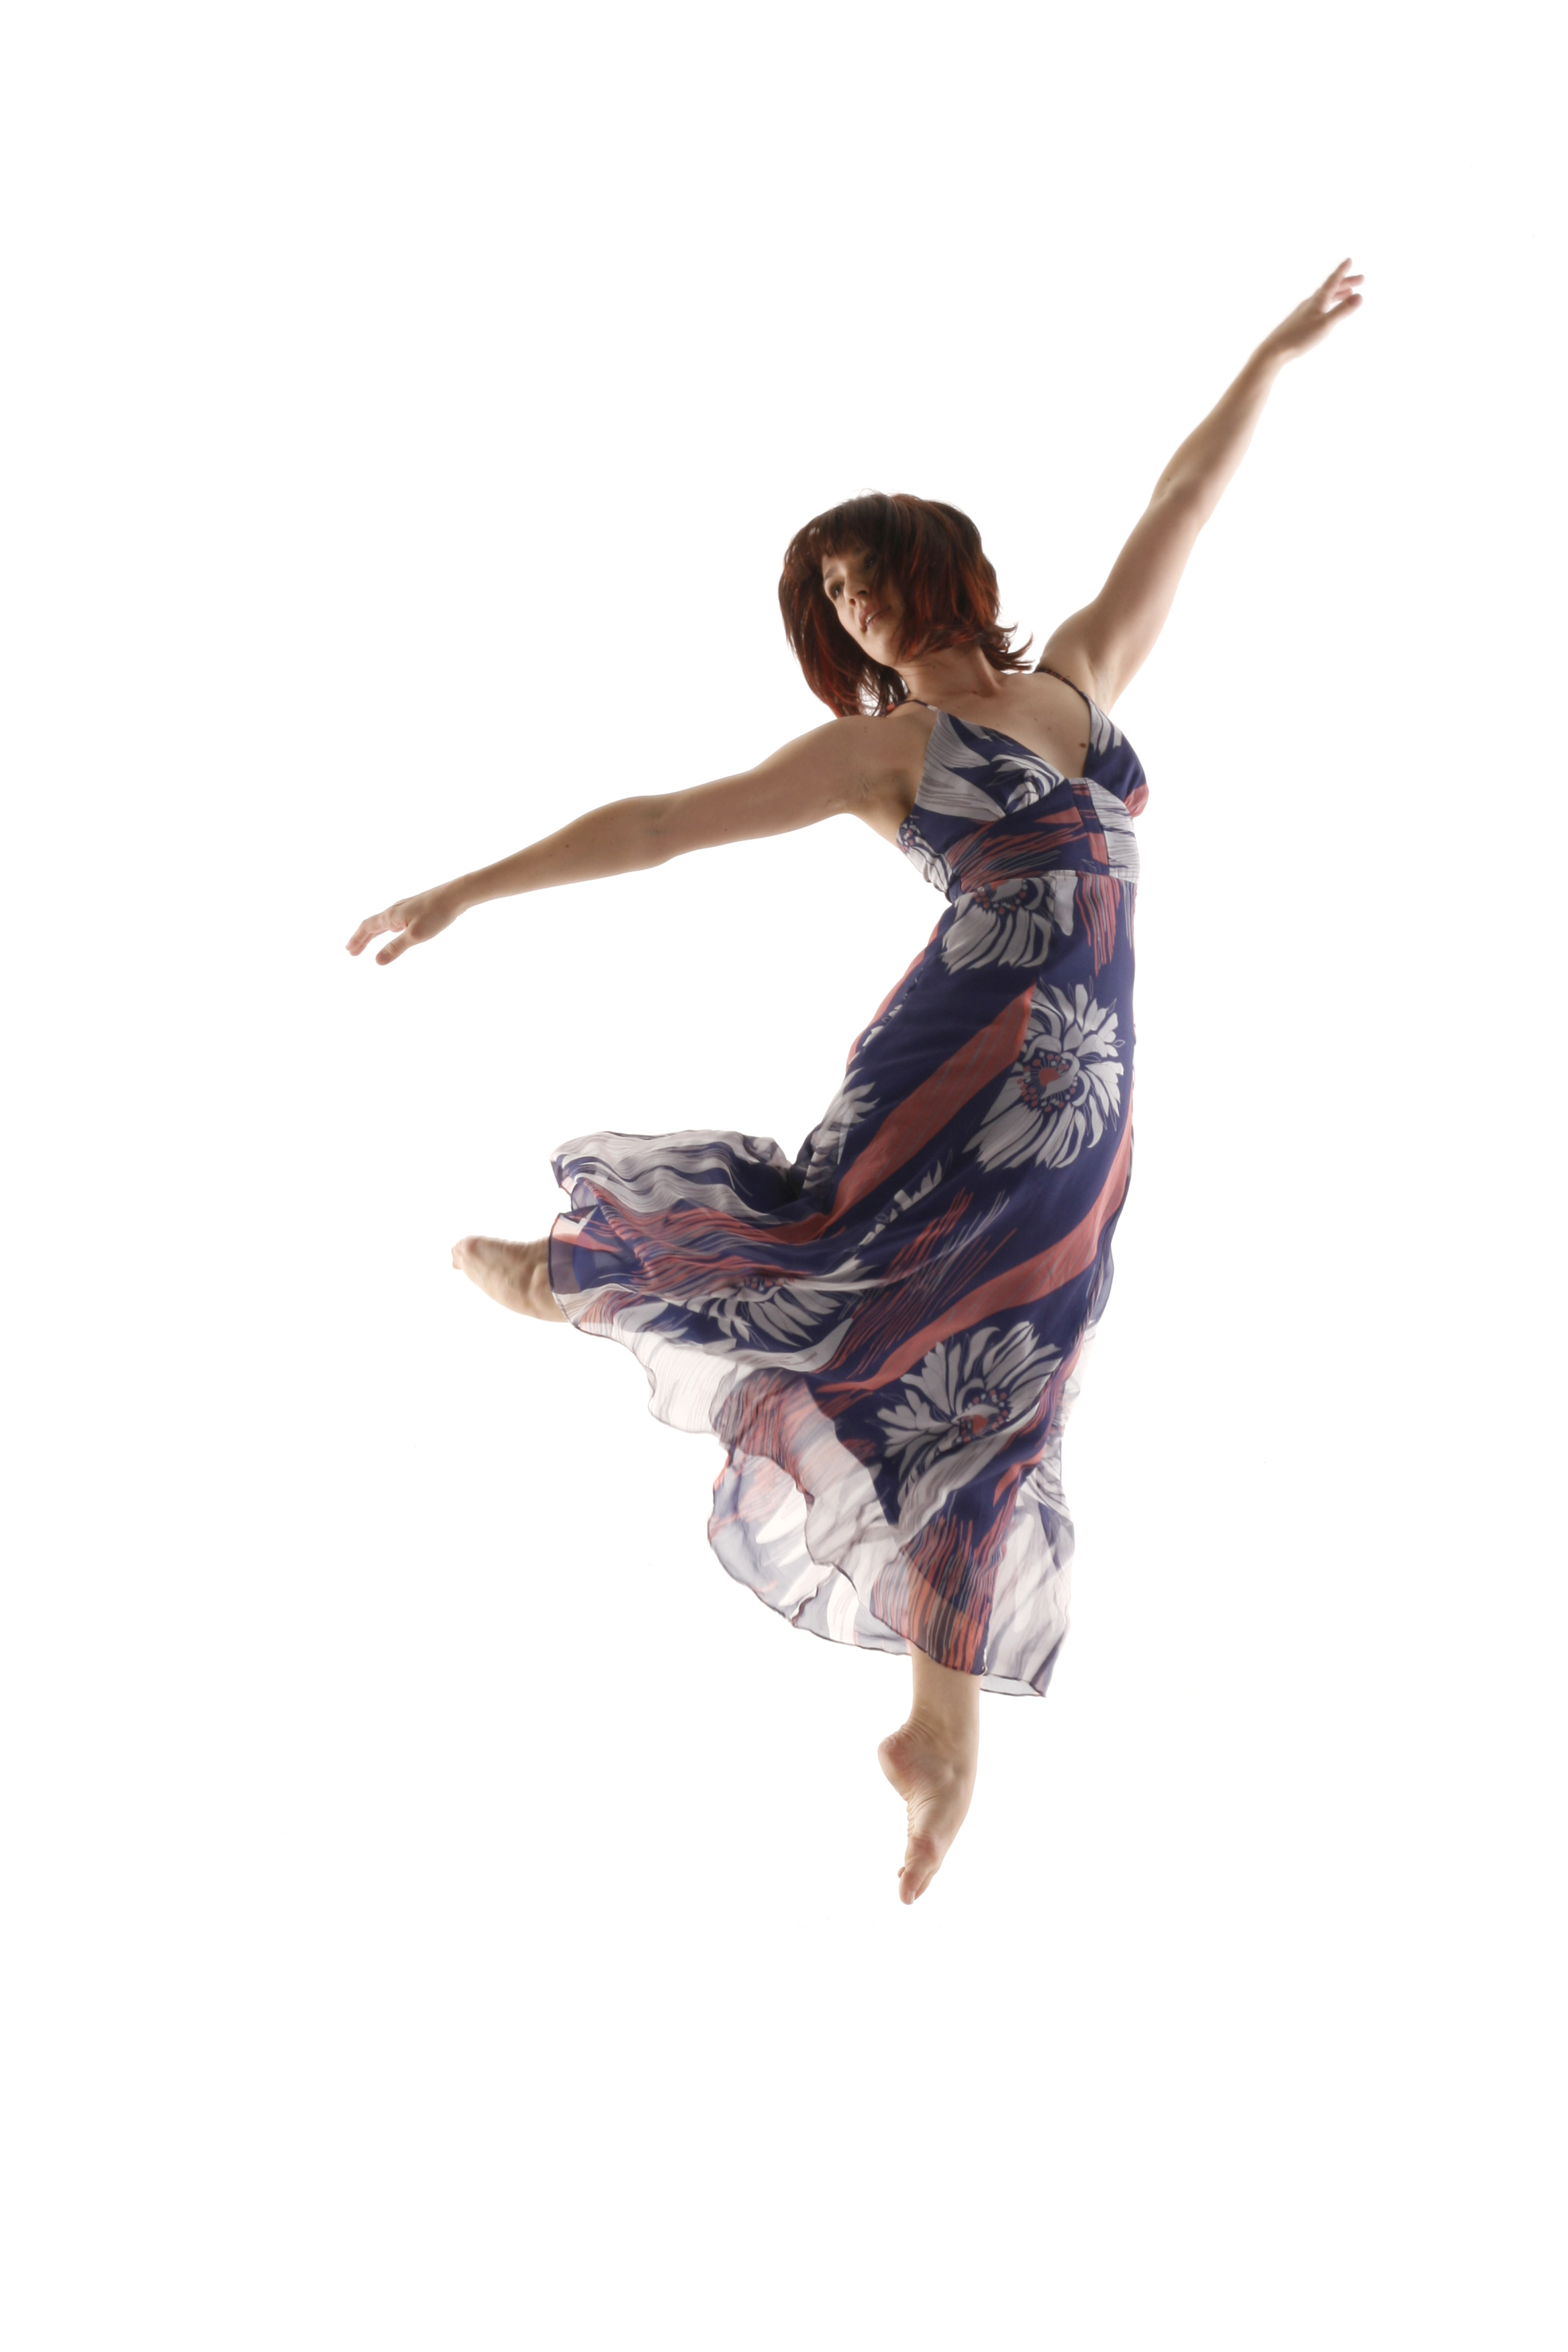 Helen Duncan_leaping_Photographer Jeremy Phillips.jpg